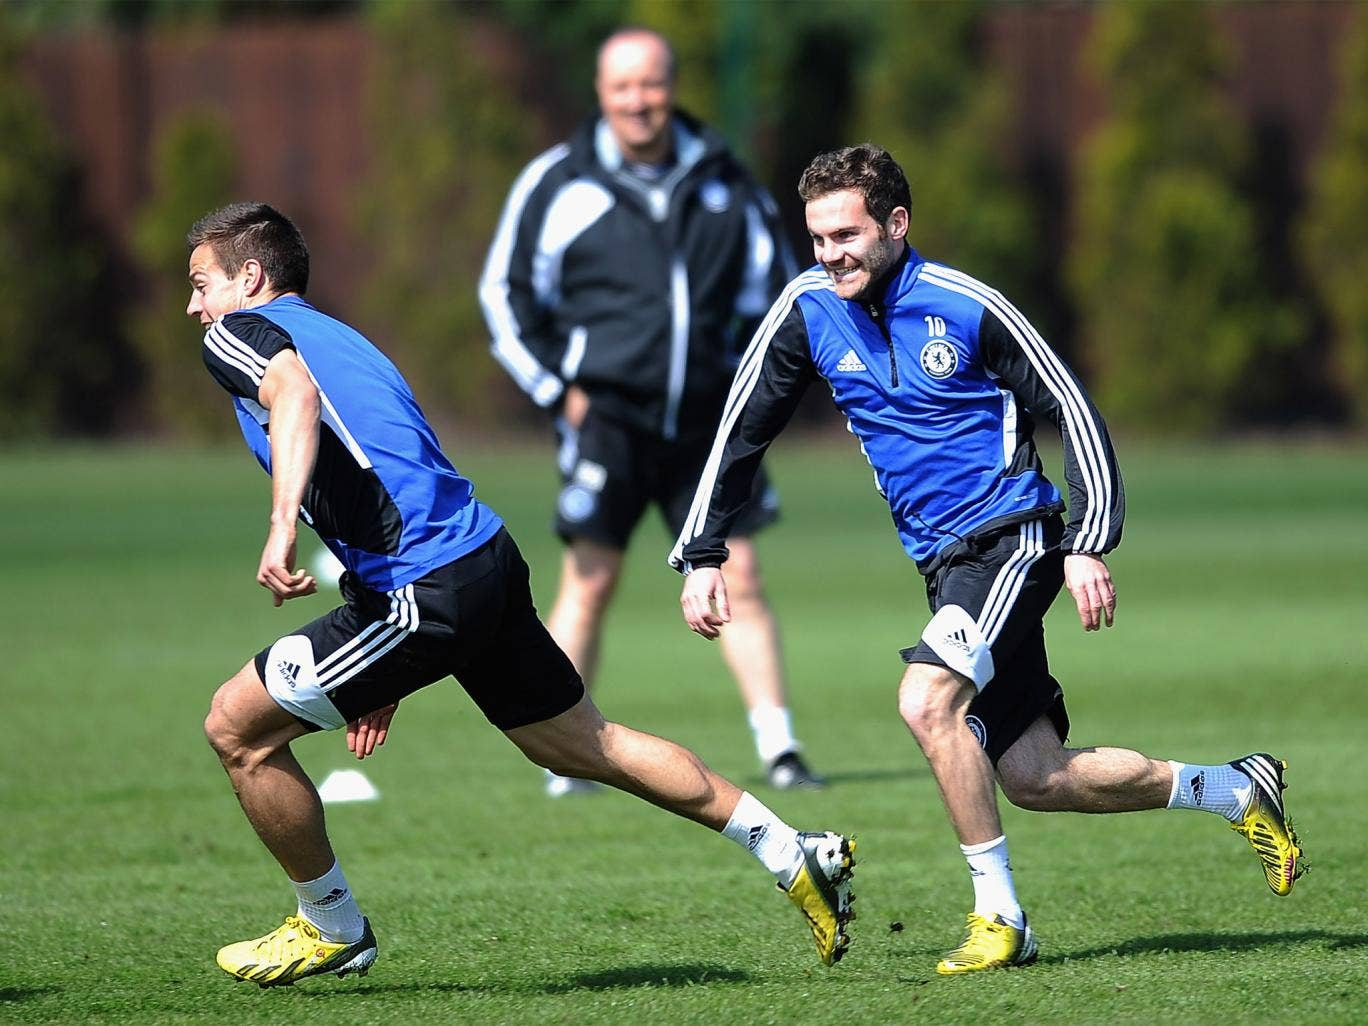 Juan Mata (right) and Cesar Azpilicueta enjoy training yesterday as Rafa Benitez looks on